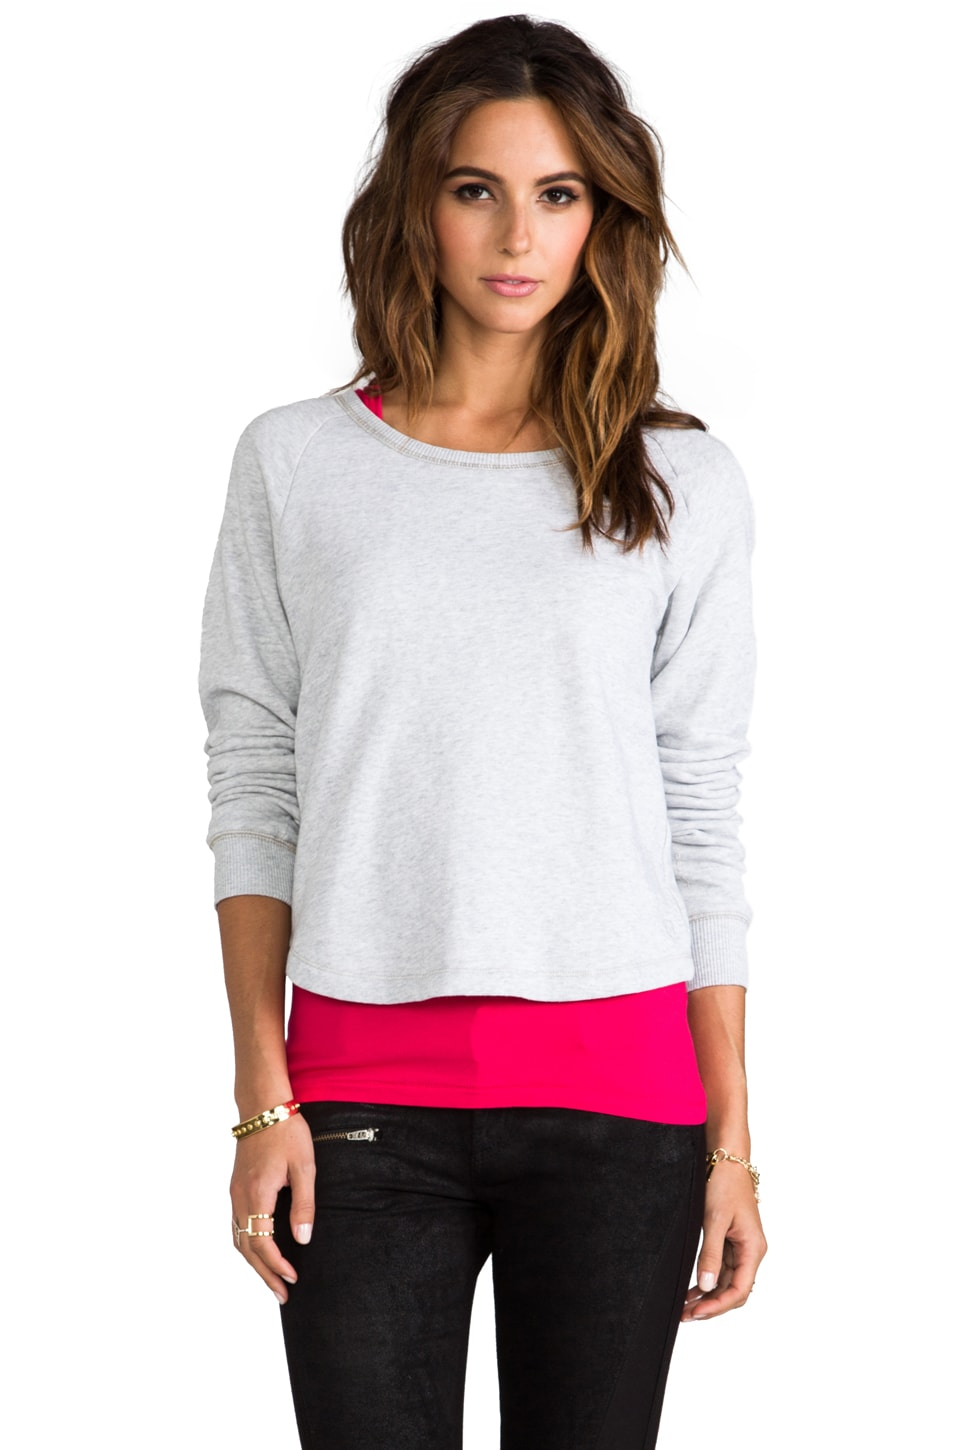 G-Star Roots Double R-Neck Sweatshirt in Sports Heather